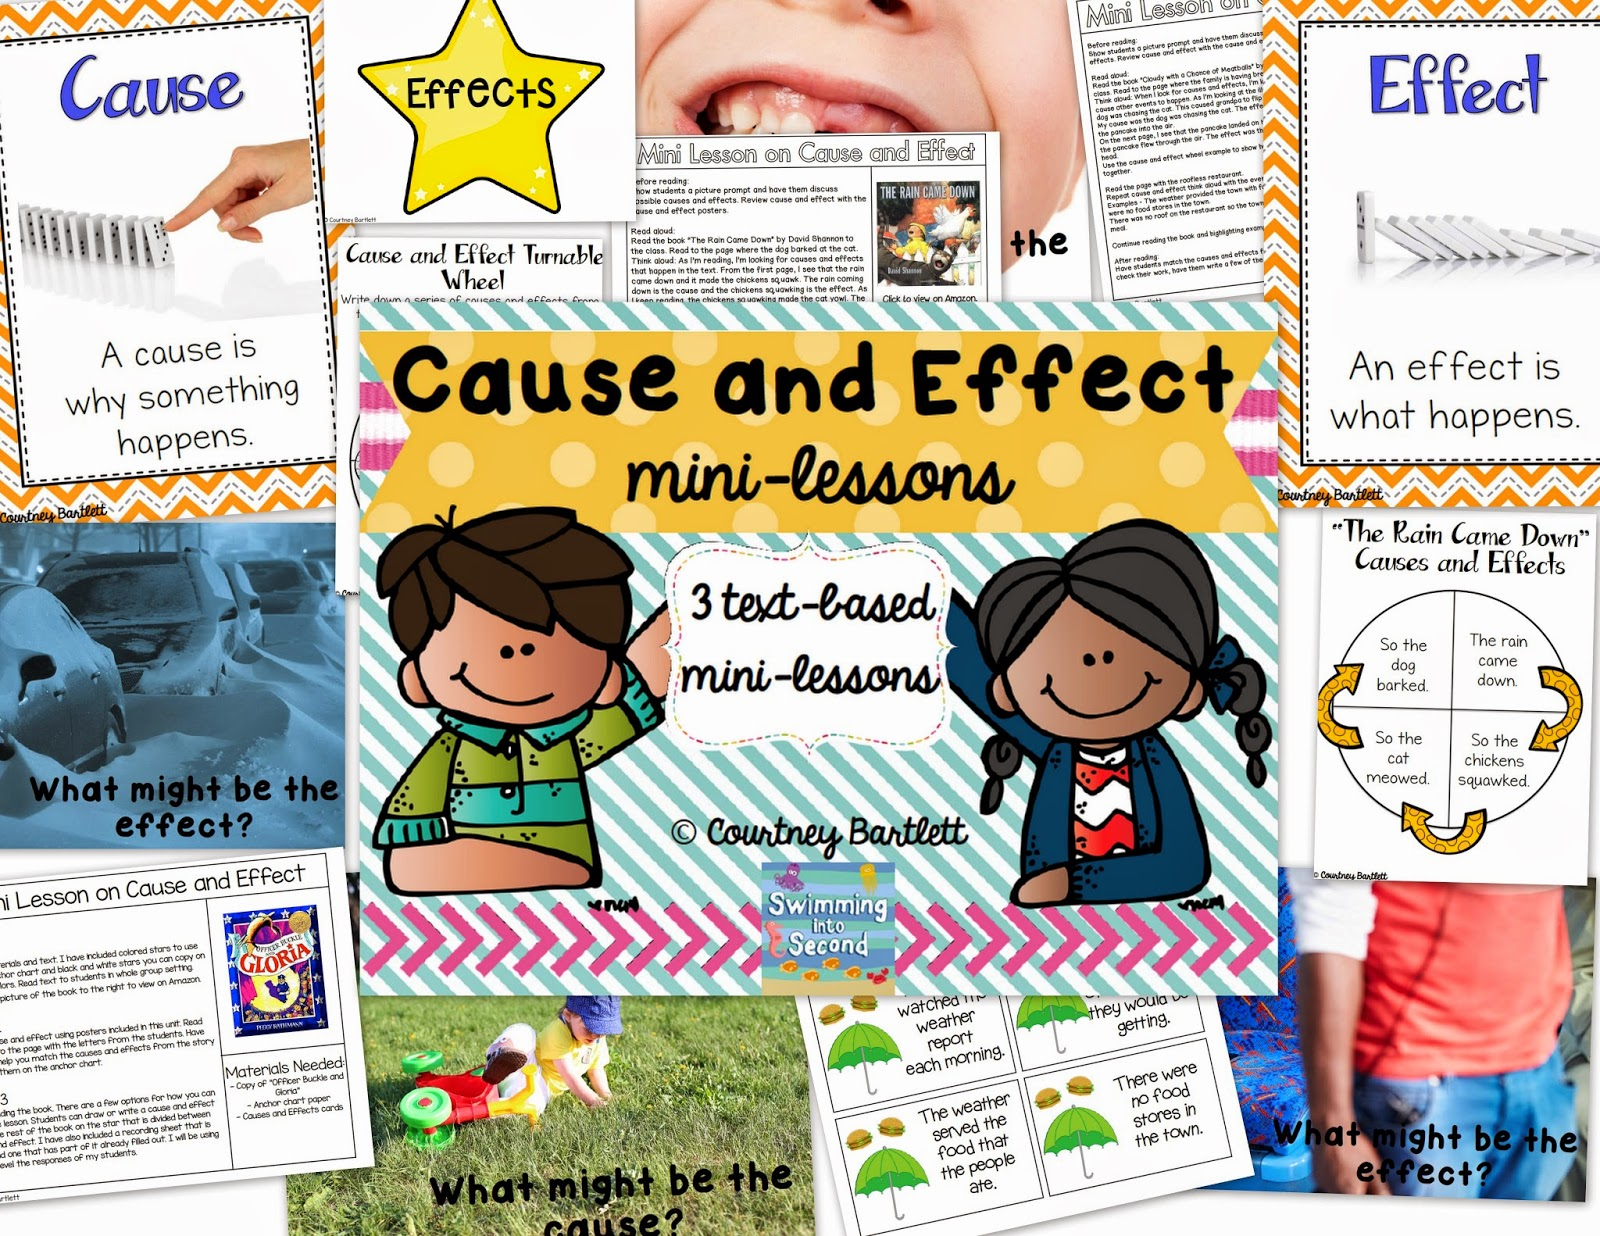 https://www.teacherspayteachers.com/Product/Cause-and-Effect-mini-lesson-pack-1719158